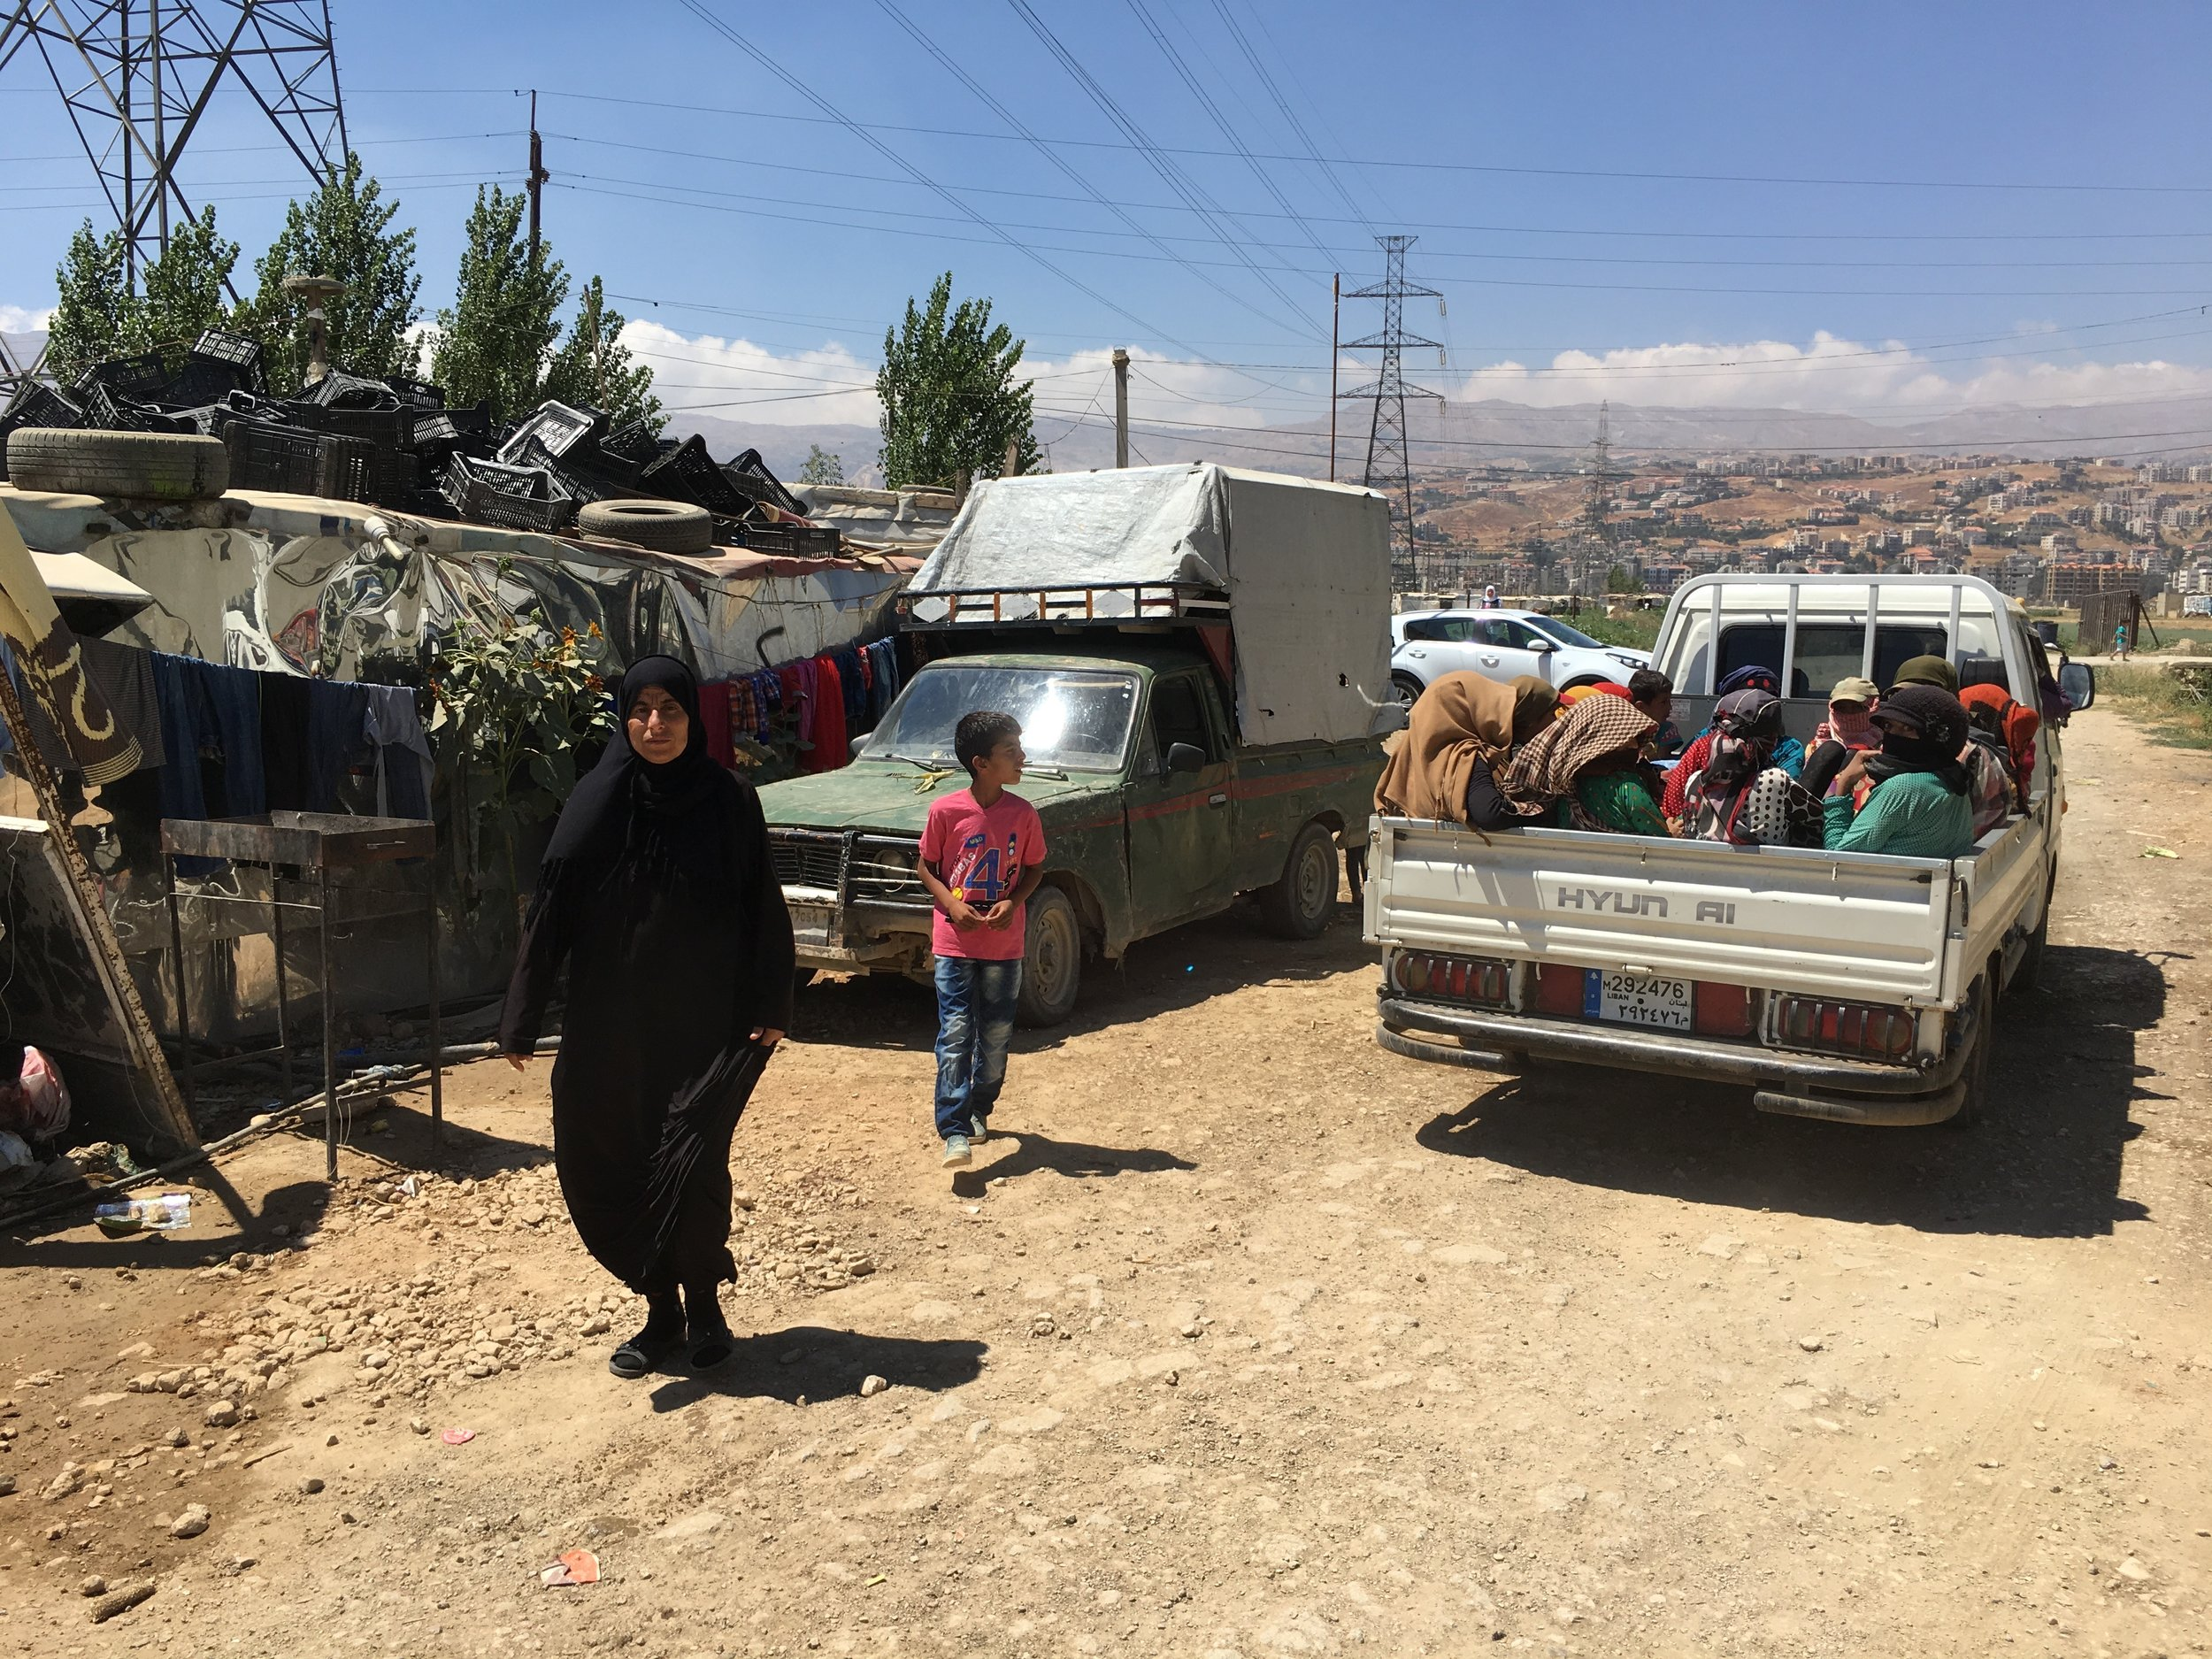 During my 8-month trip, I visited a ton of camps in West Bekaa -- which has the highest concentration of Syrians in Lebanon (more than 350,000 refugees).